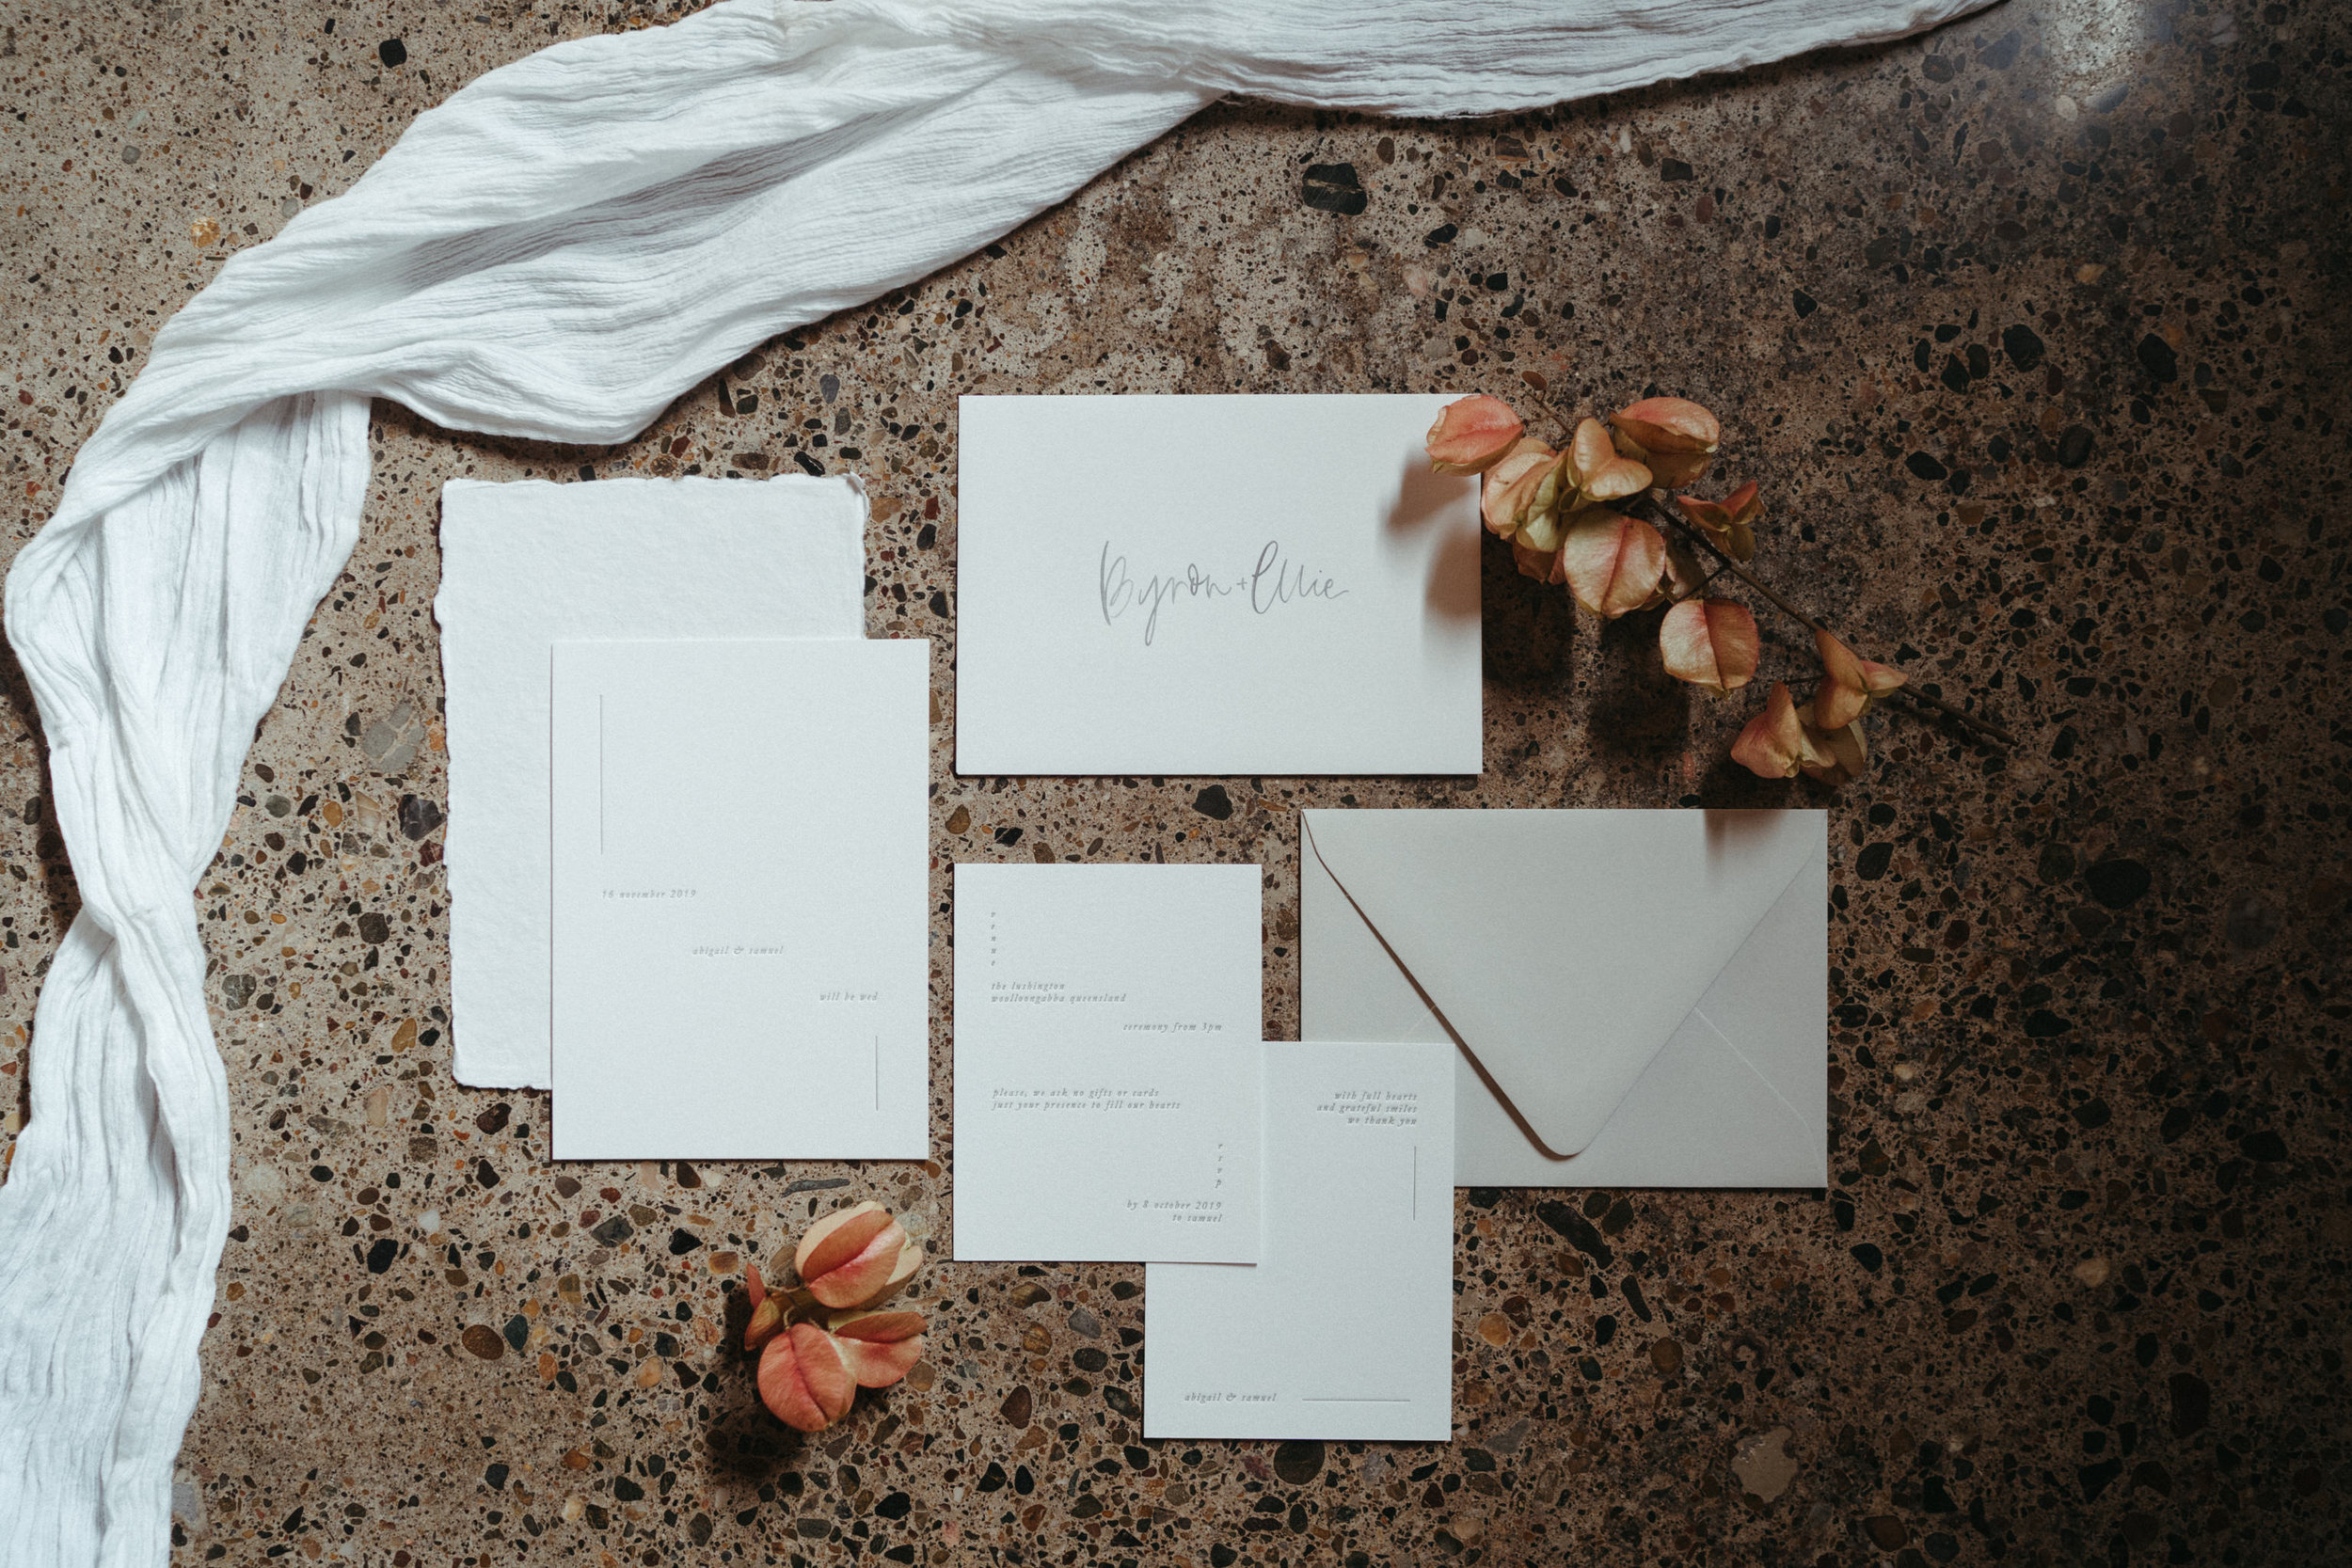 The Lushington Brisbane - Ephemeral Creative - The Line Press invitation suite